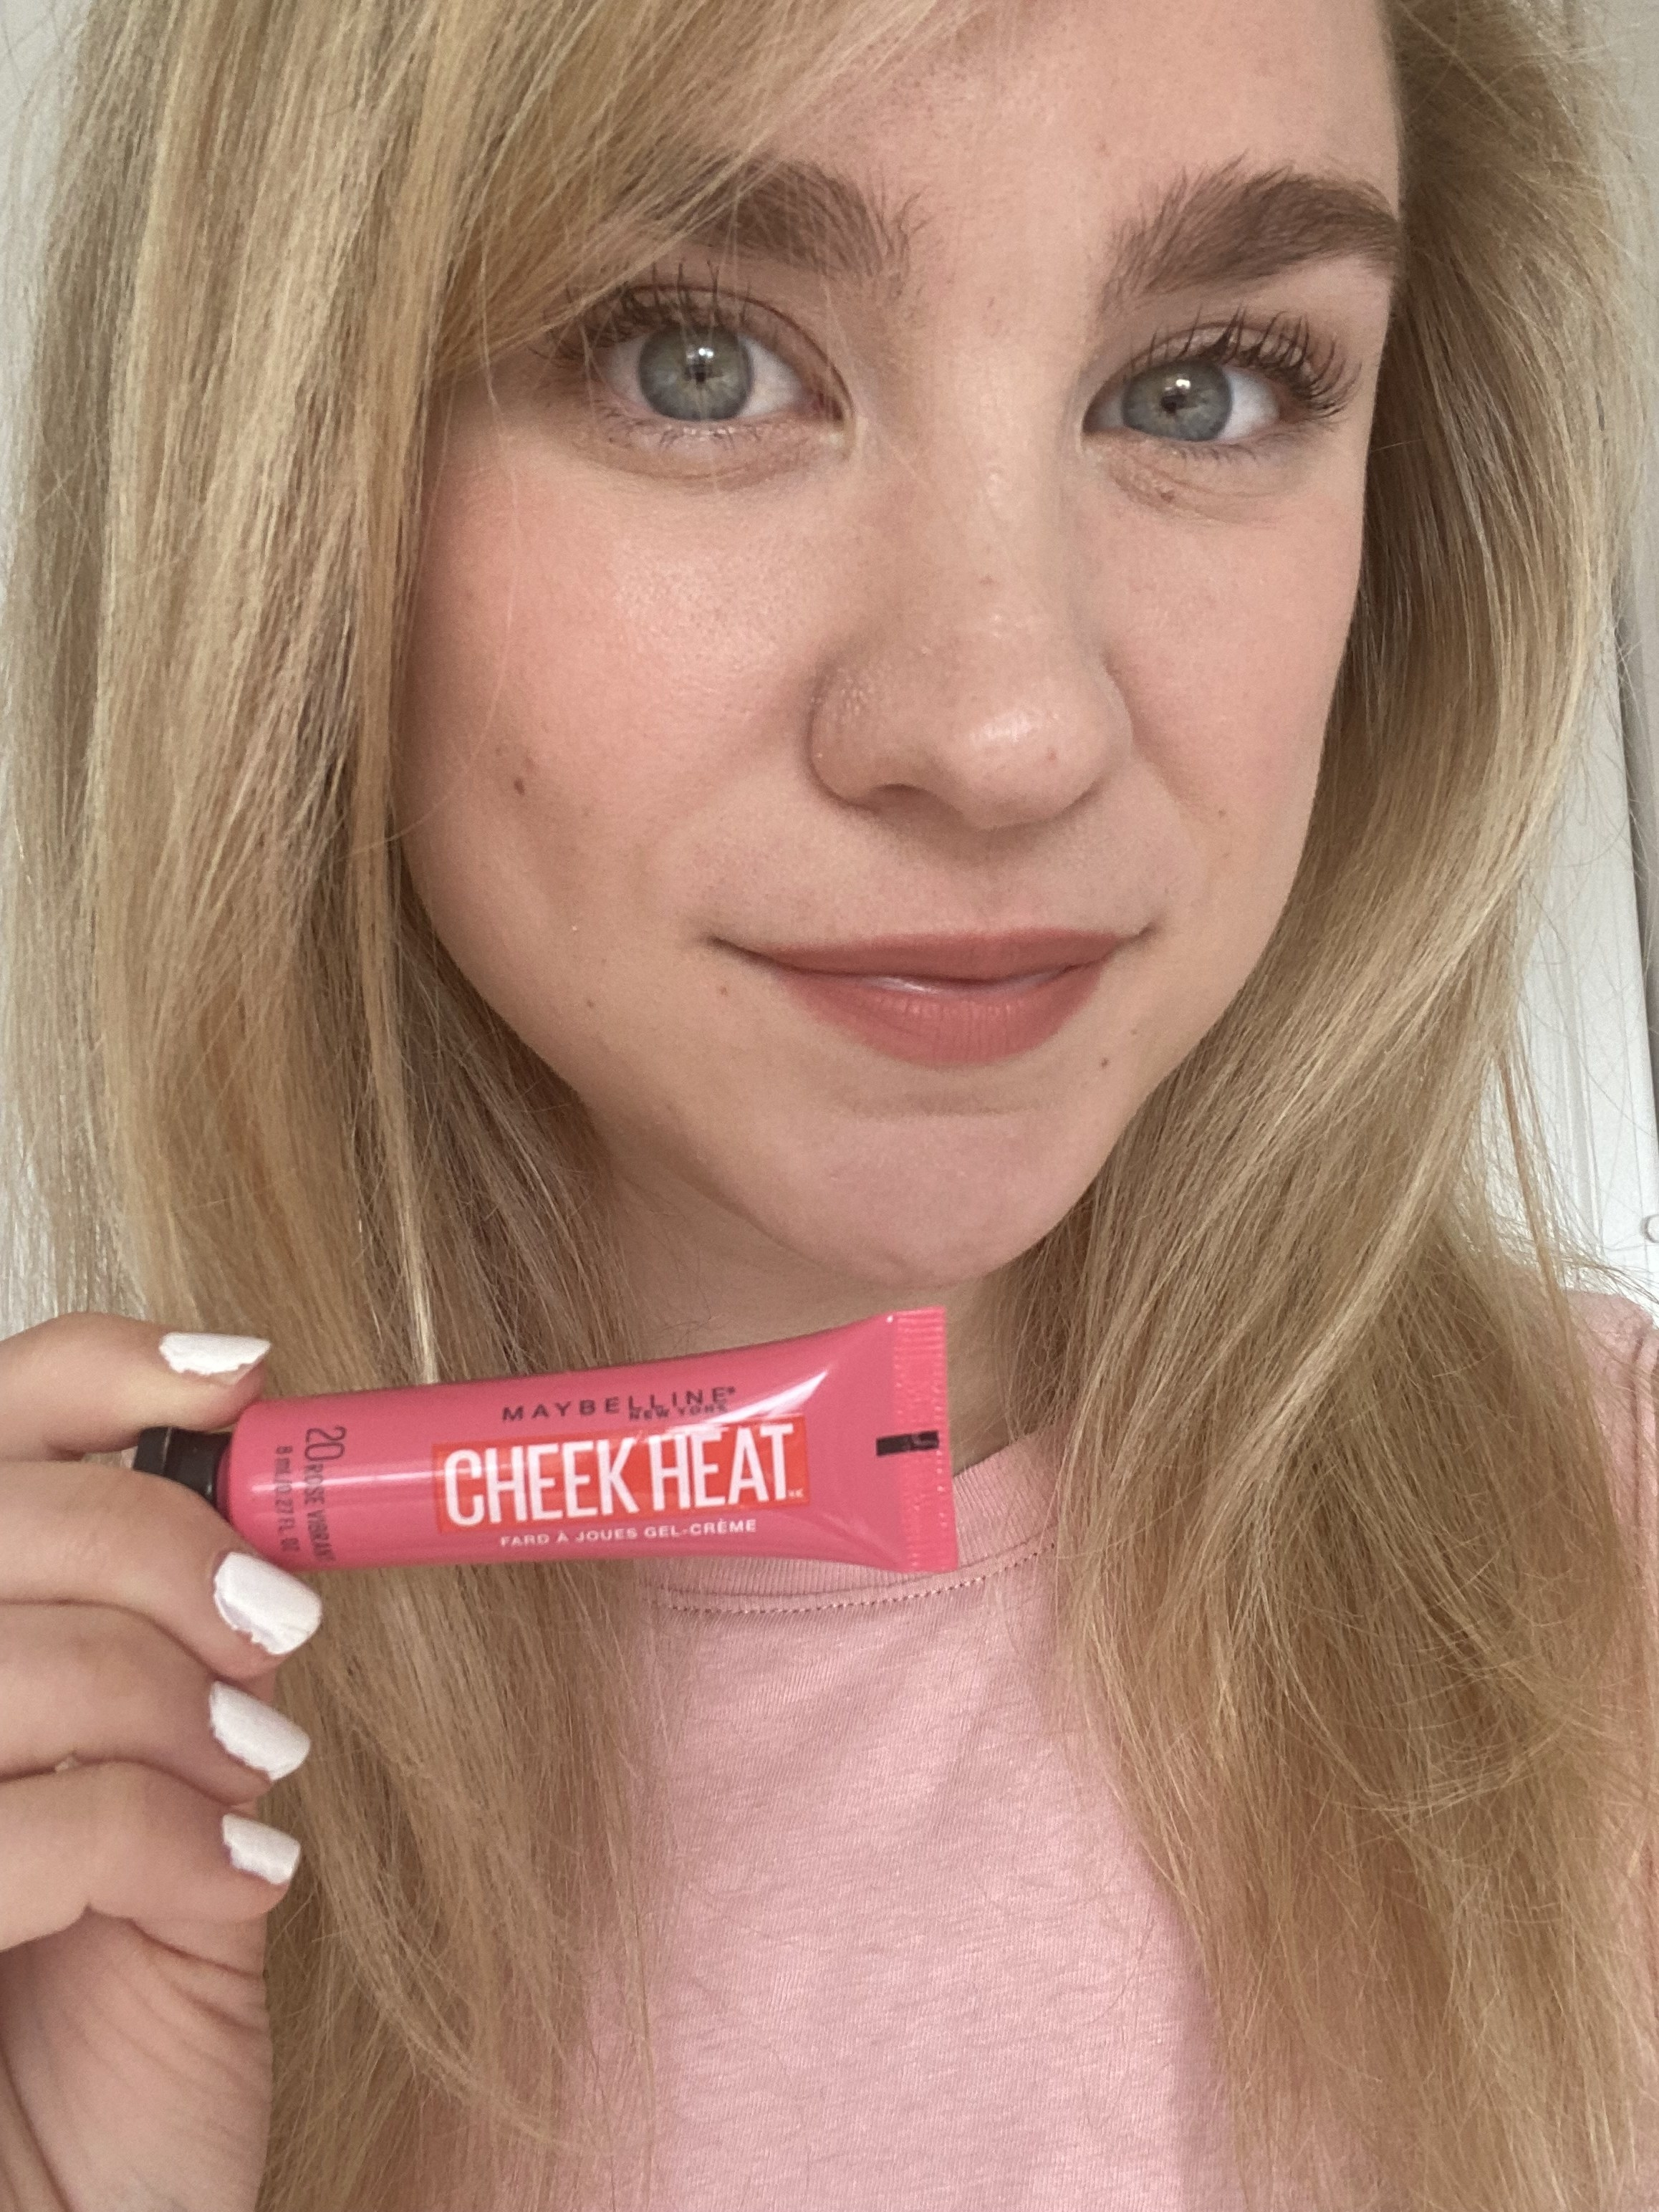 BuzzFeed editor holding pink tube of Cheek Heat with it applied to cheeks